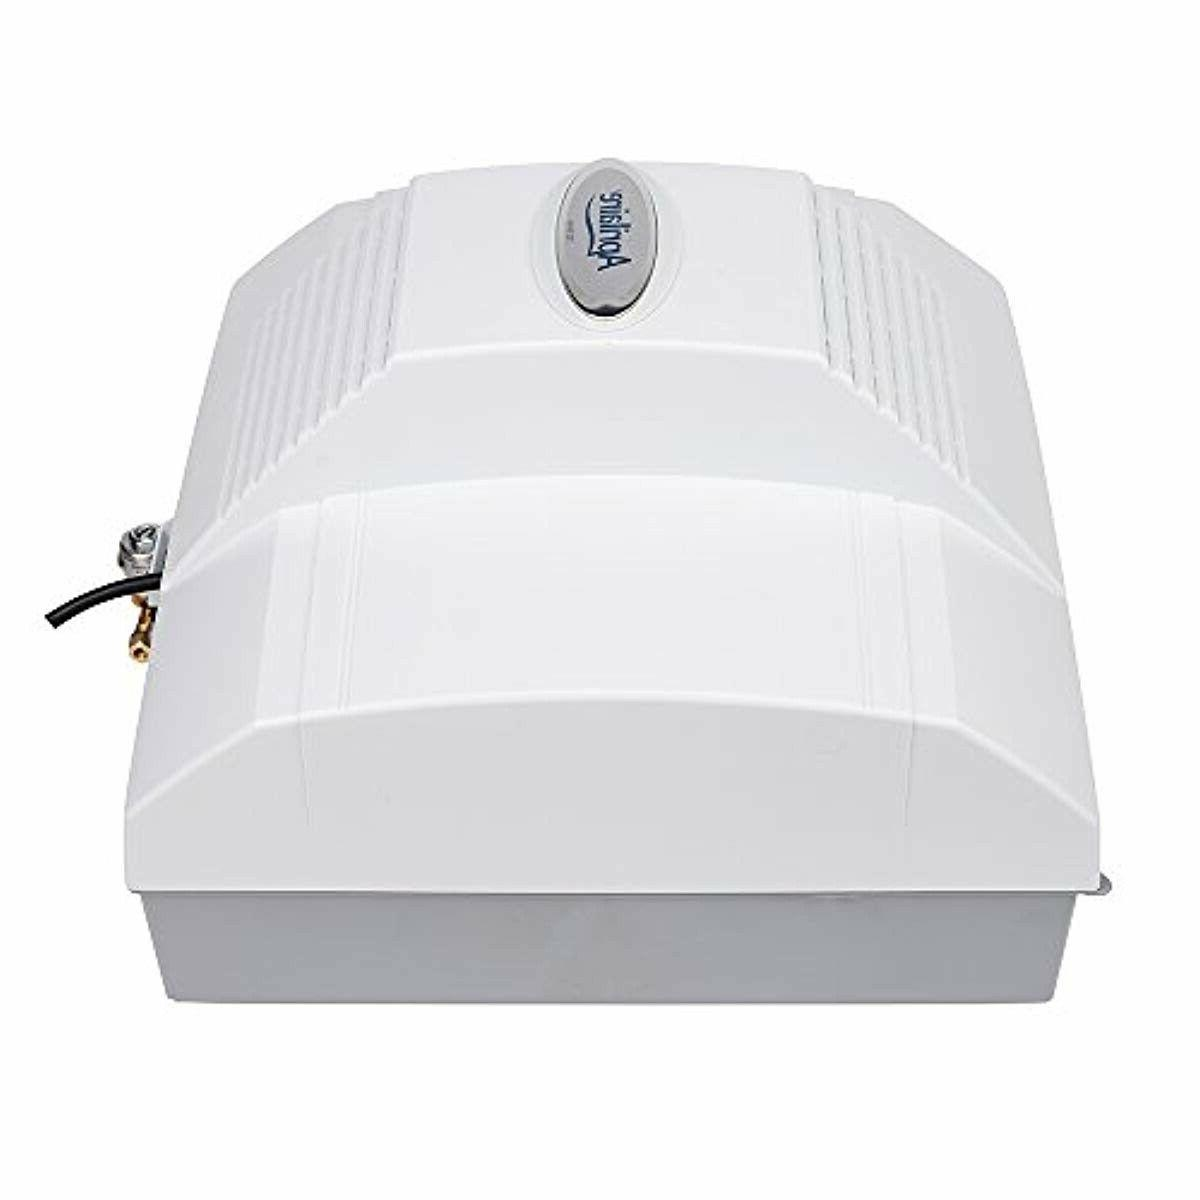 Aprilaire 700M Whole Fan Powered Humidifier, High Furnace